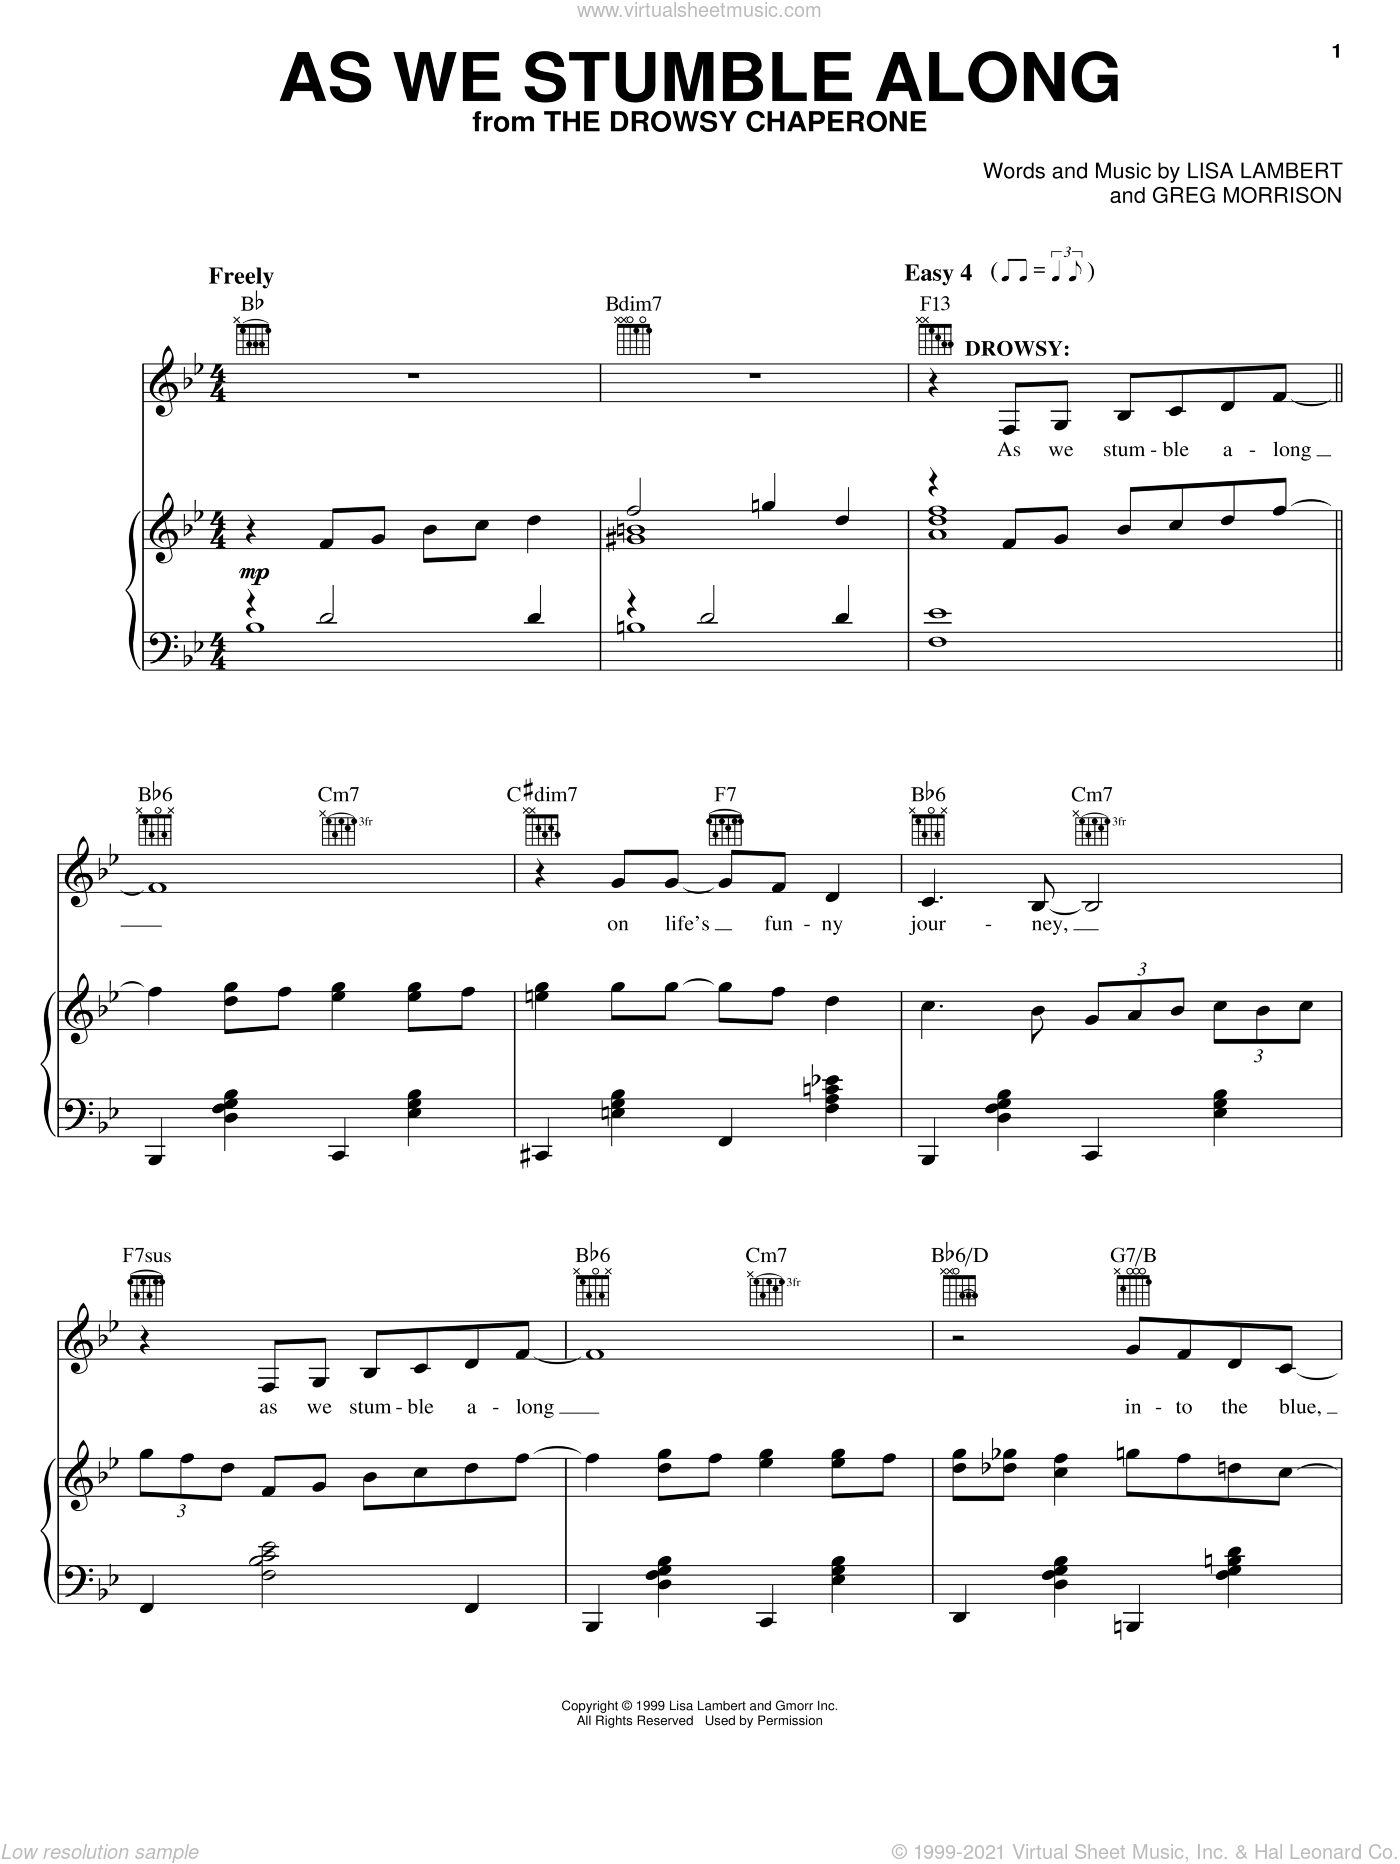 As We Stumble Along sheet music for voice, piano or guitar by Lisa Lambert, Drowsy Chaperone (Musical) and Greg Morrison, intermediate skill level